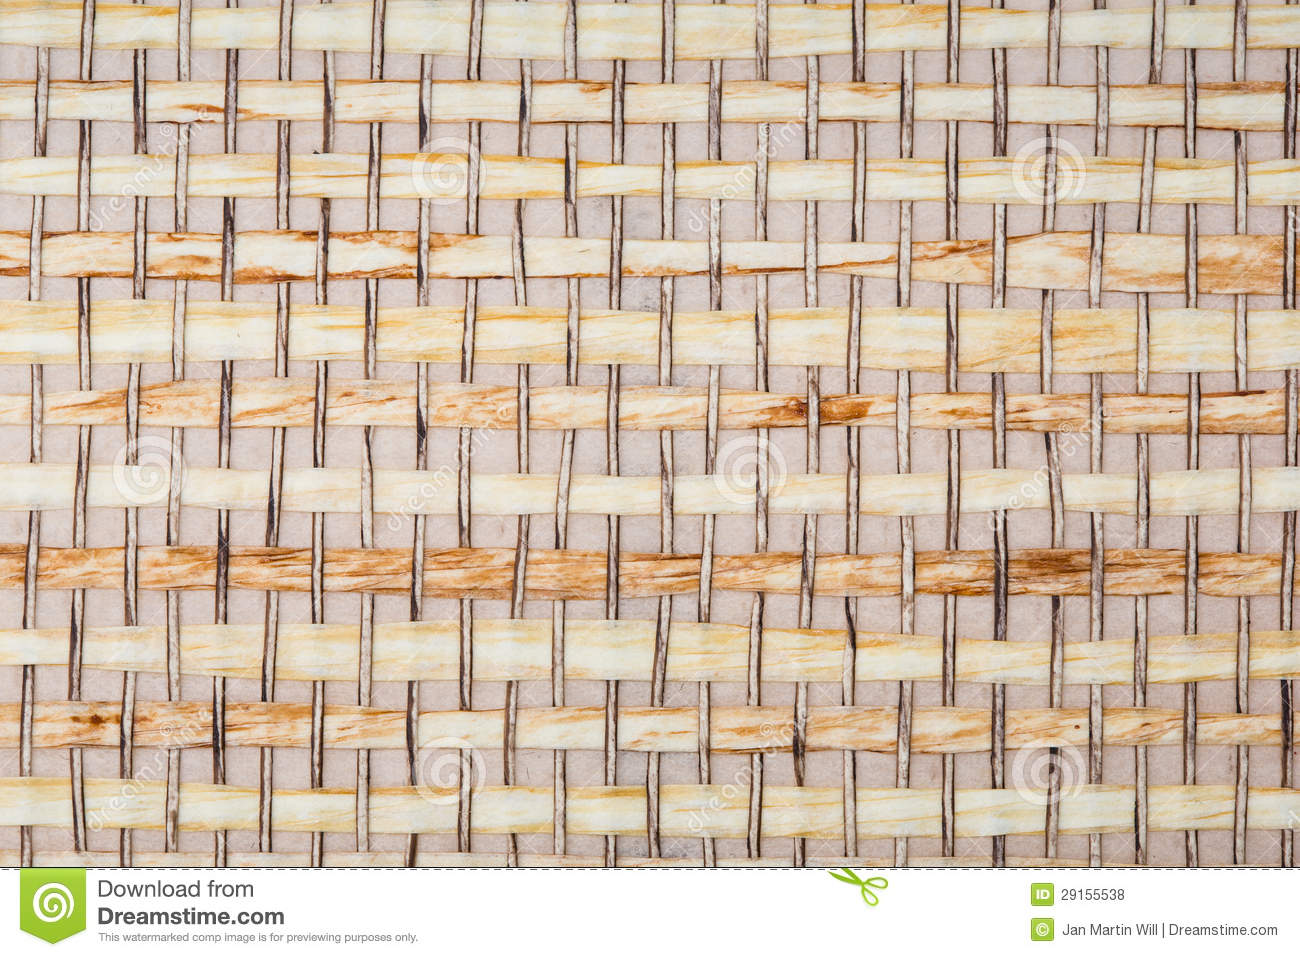 Woven wood panel royalty free stock photos image 29155538 - Woven wood wall panels ...